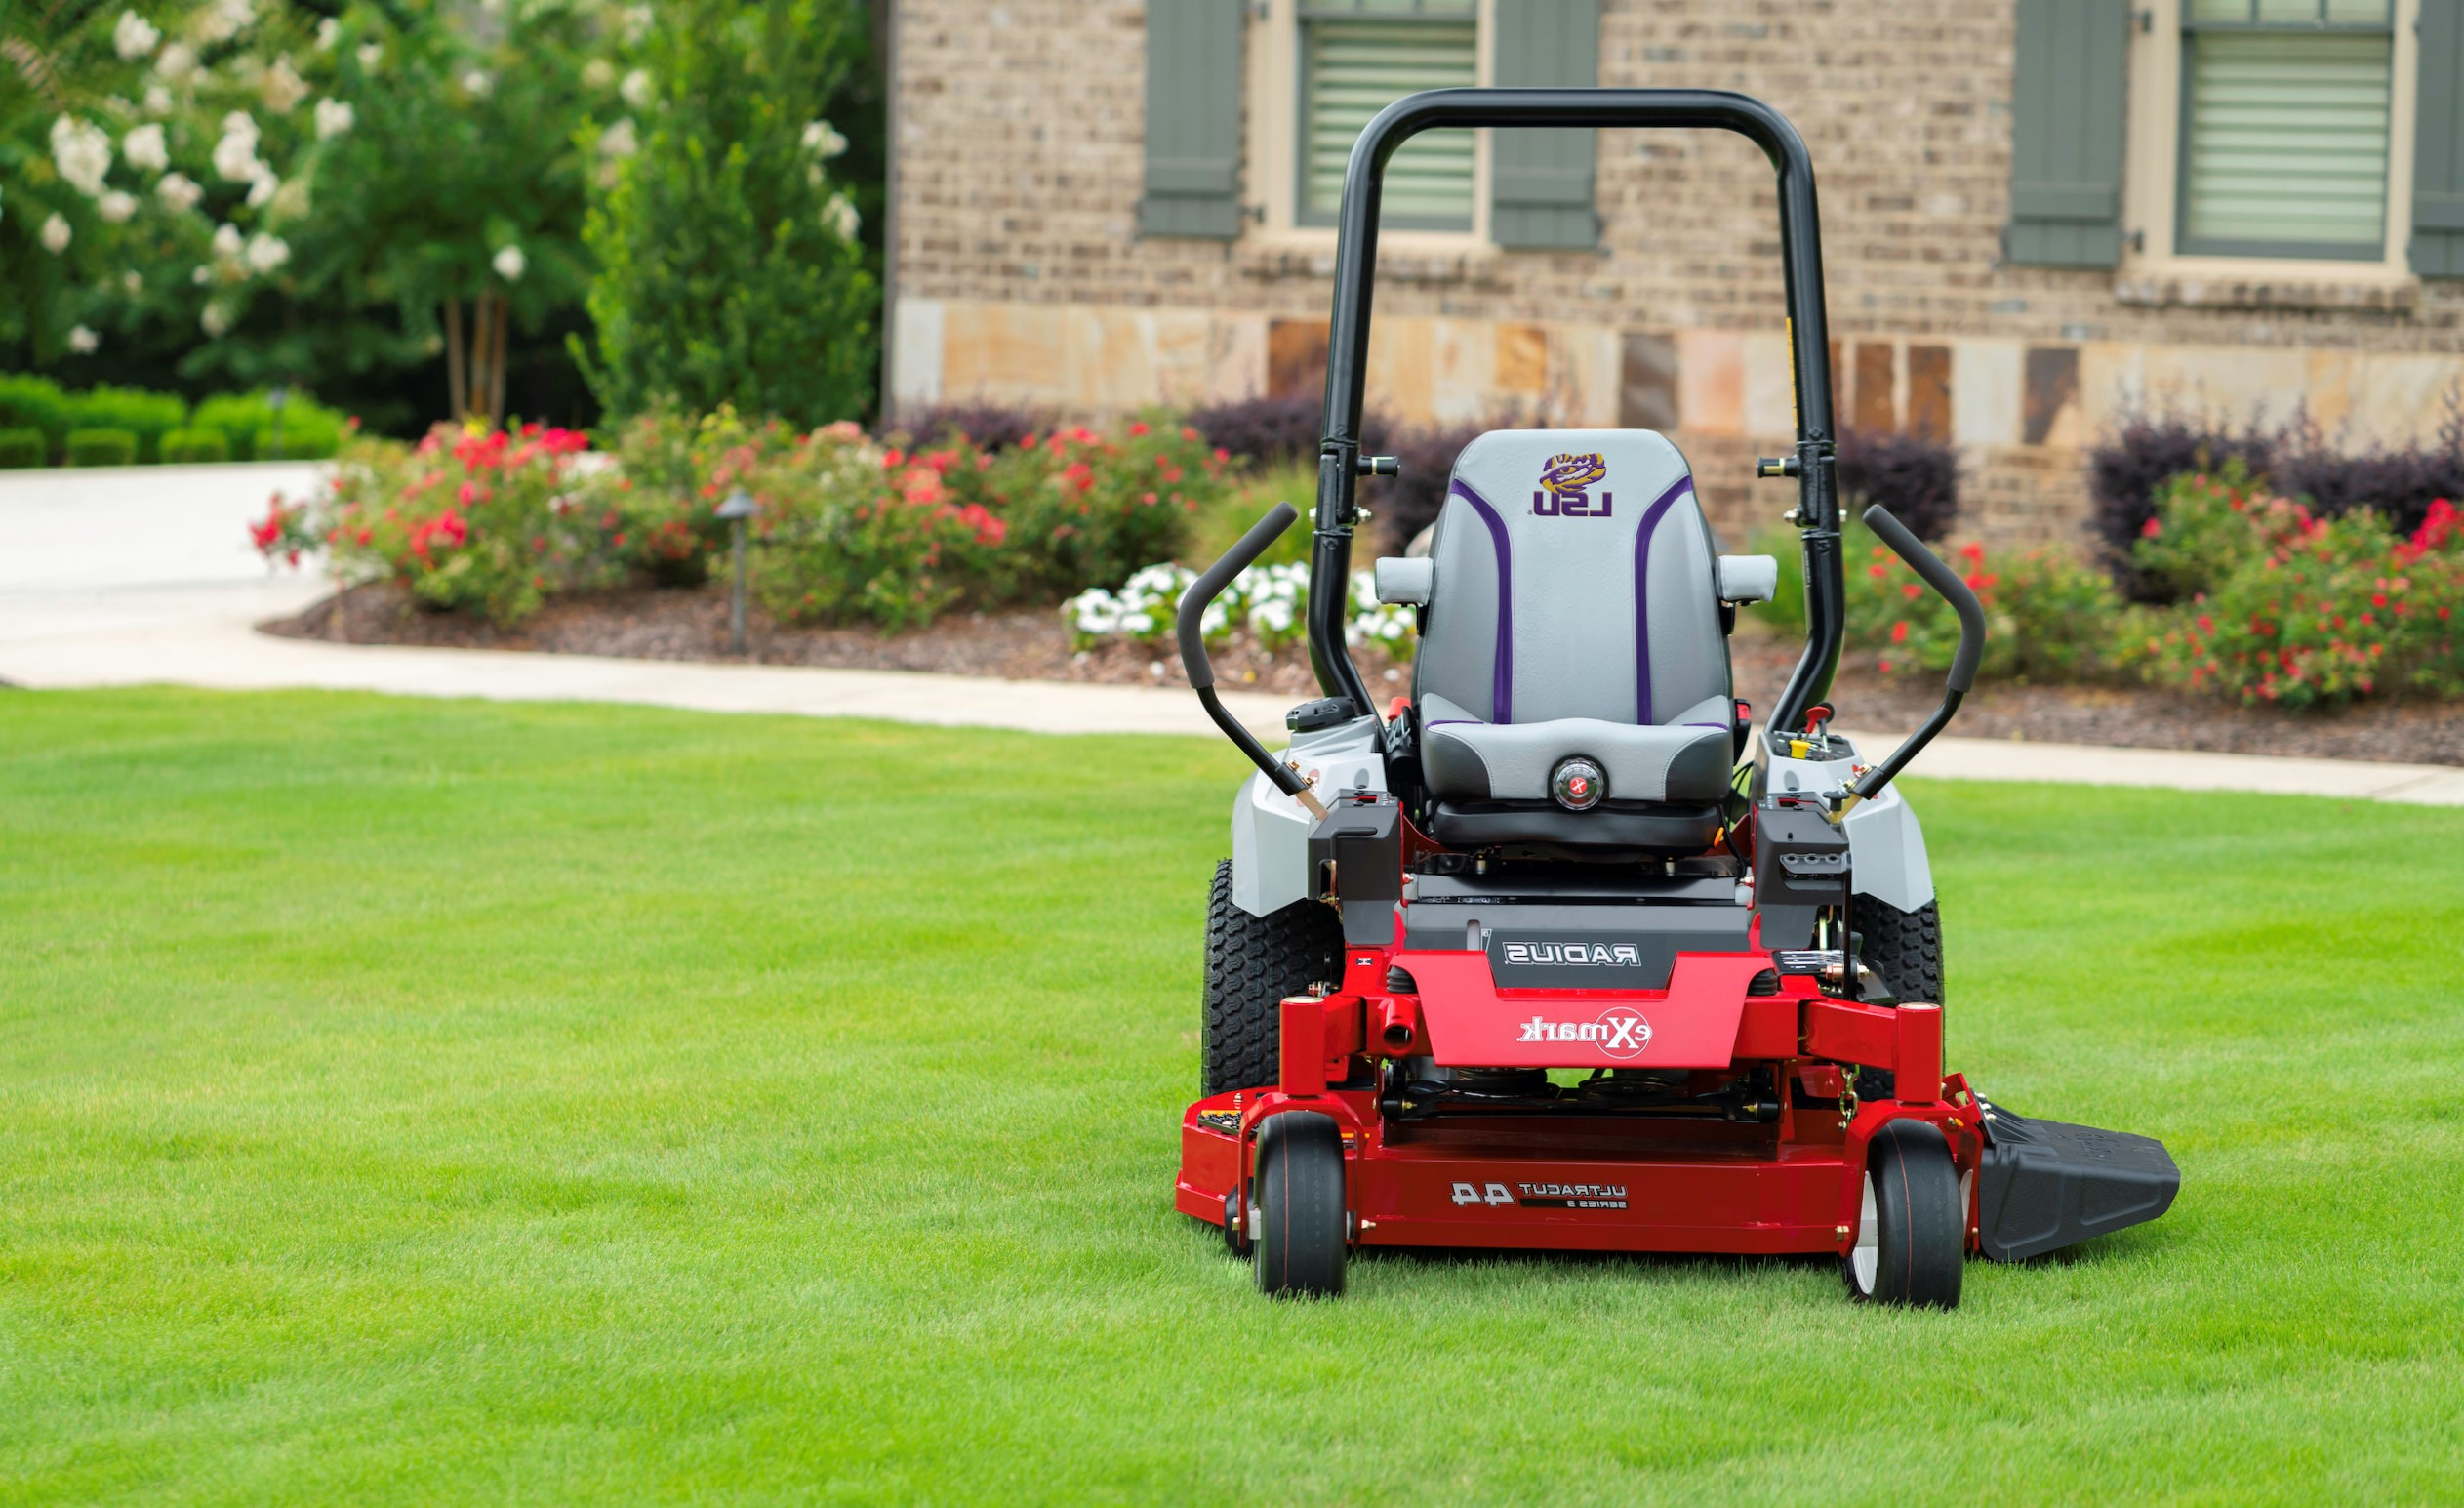 Best Lawn Mower For 5 Acres